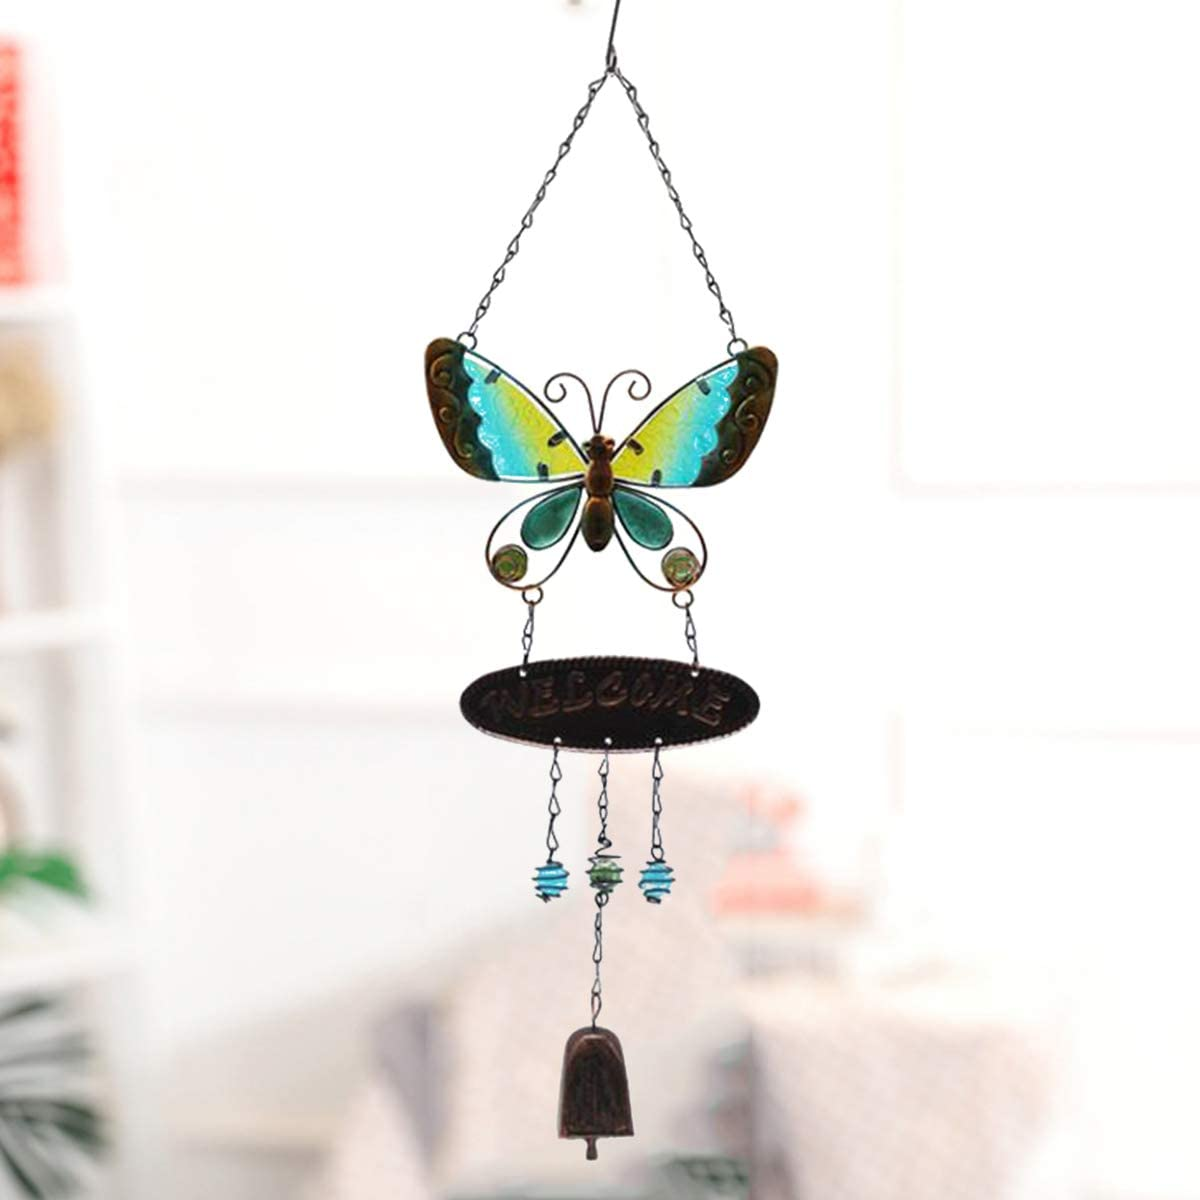 JOXJOZ Butterfly Wind Chimes Outdoor/Indoor Metal & Stained Glass Wind Chime Wall Hanging for Home,Party,Festival Decor,Garden,Yard Decoration,Gift for Mom and Grandma (Green)